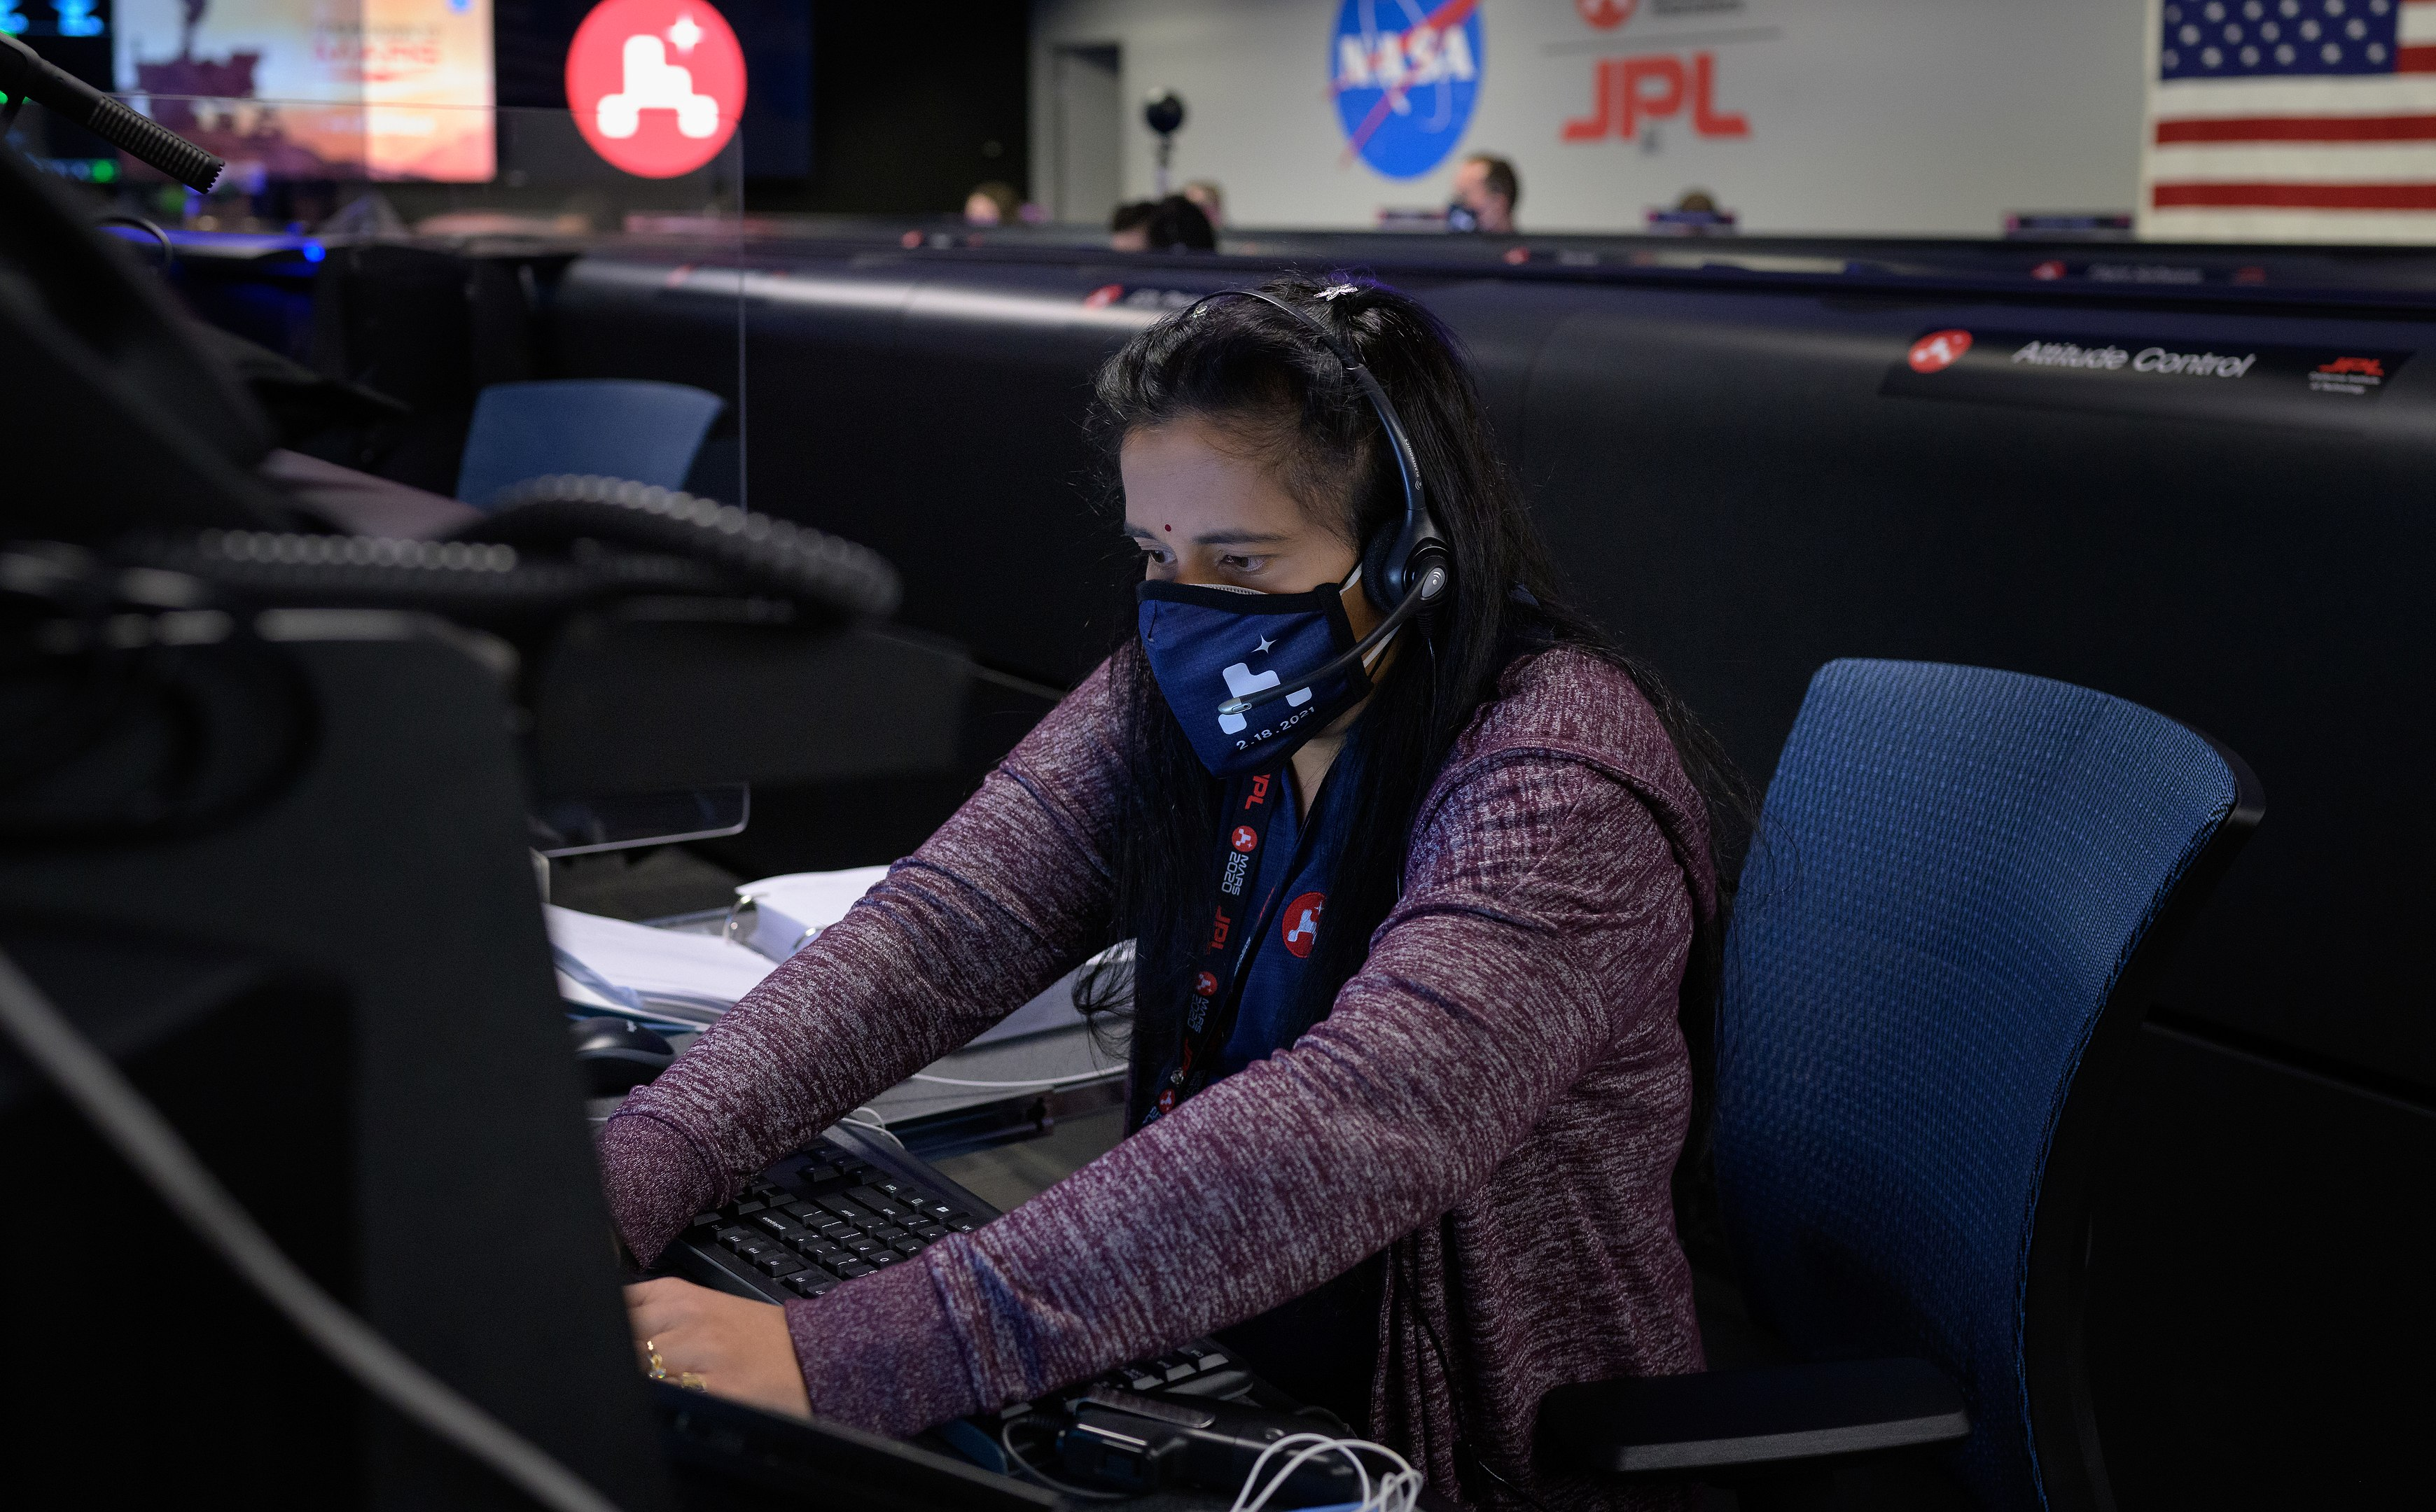 Perseverance Mars Rover Mission Guidance, Navigation, and Controls Operations Lead Swati Mohan